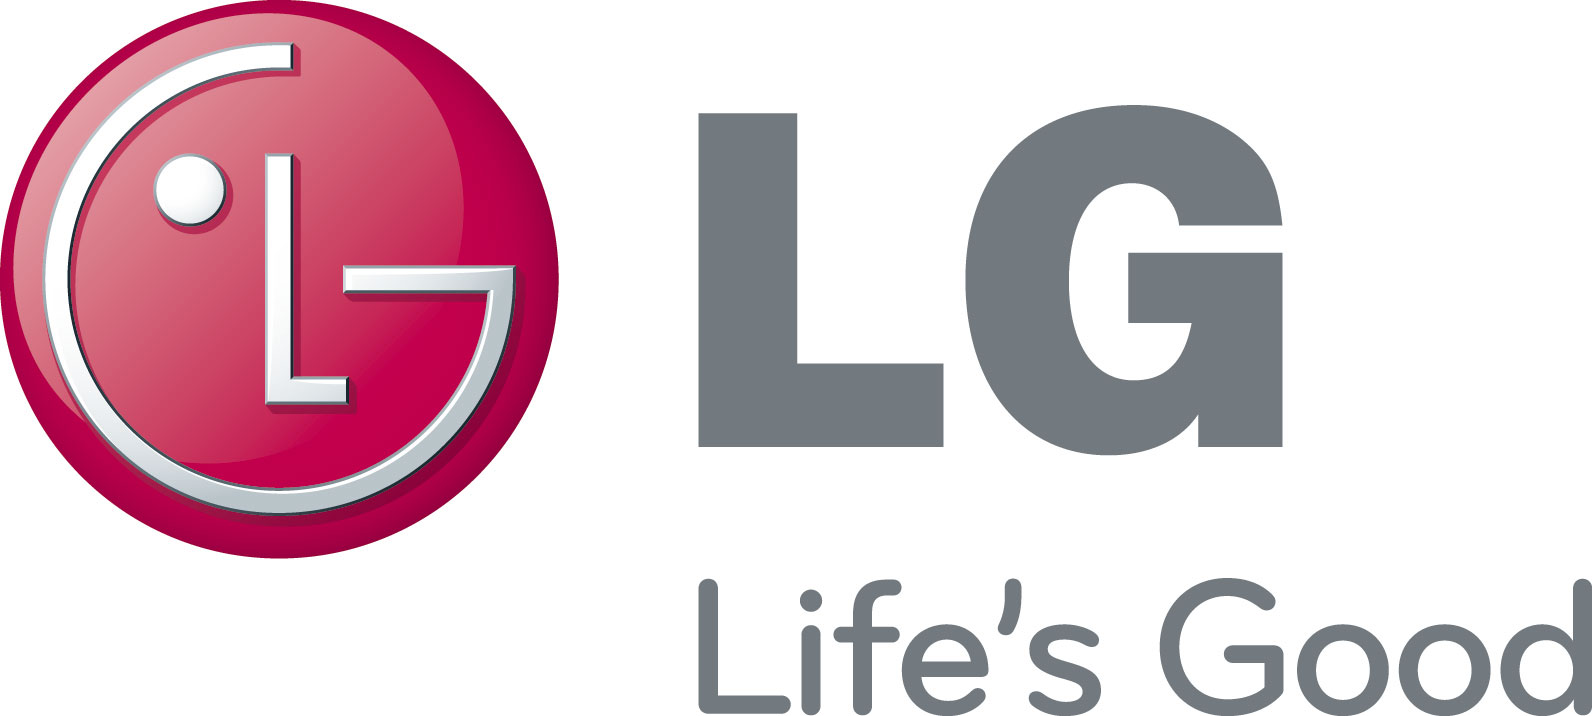 Lg Appliances Customer Service Complaints Department Refrigerators Fuse Box Logo Of Corporate Offices